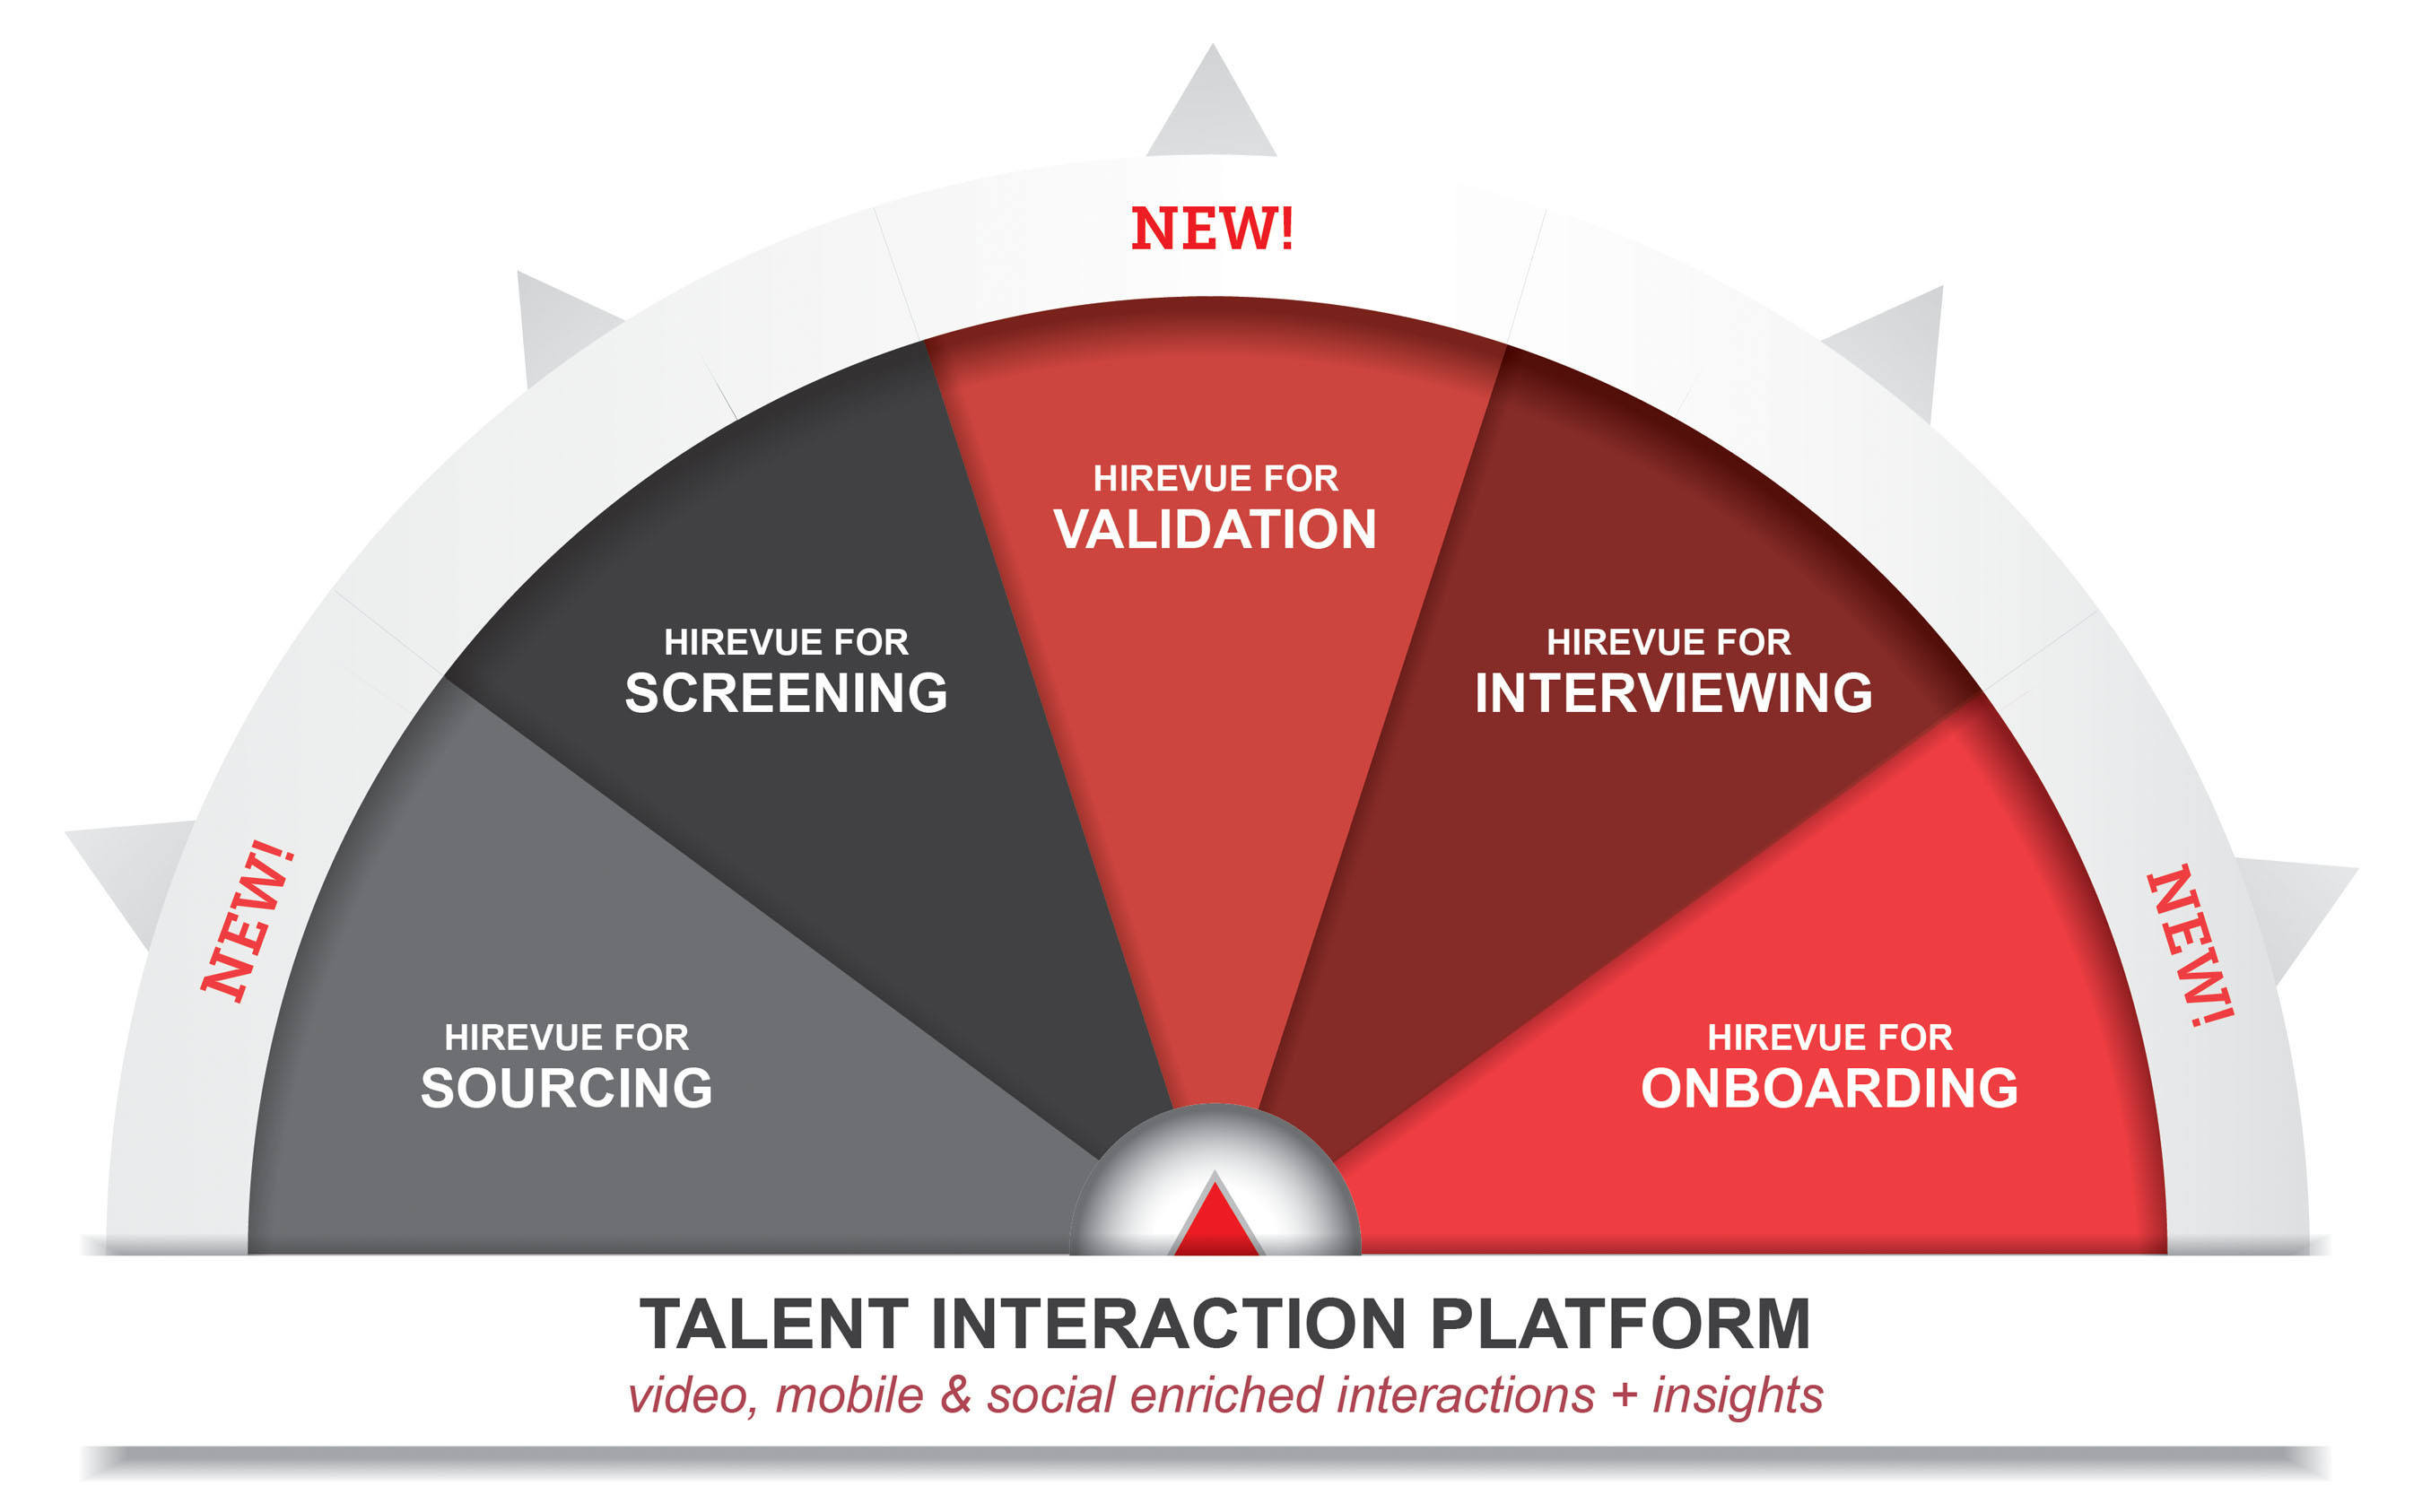 Digital recruiting provider HireVue, today announced its expanded Talent Interaction Platform. The cloud-based ...